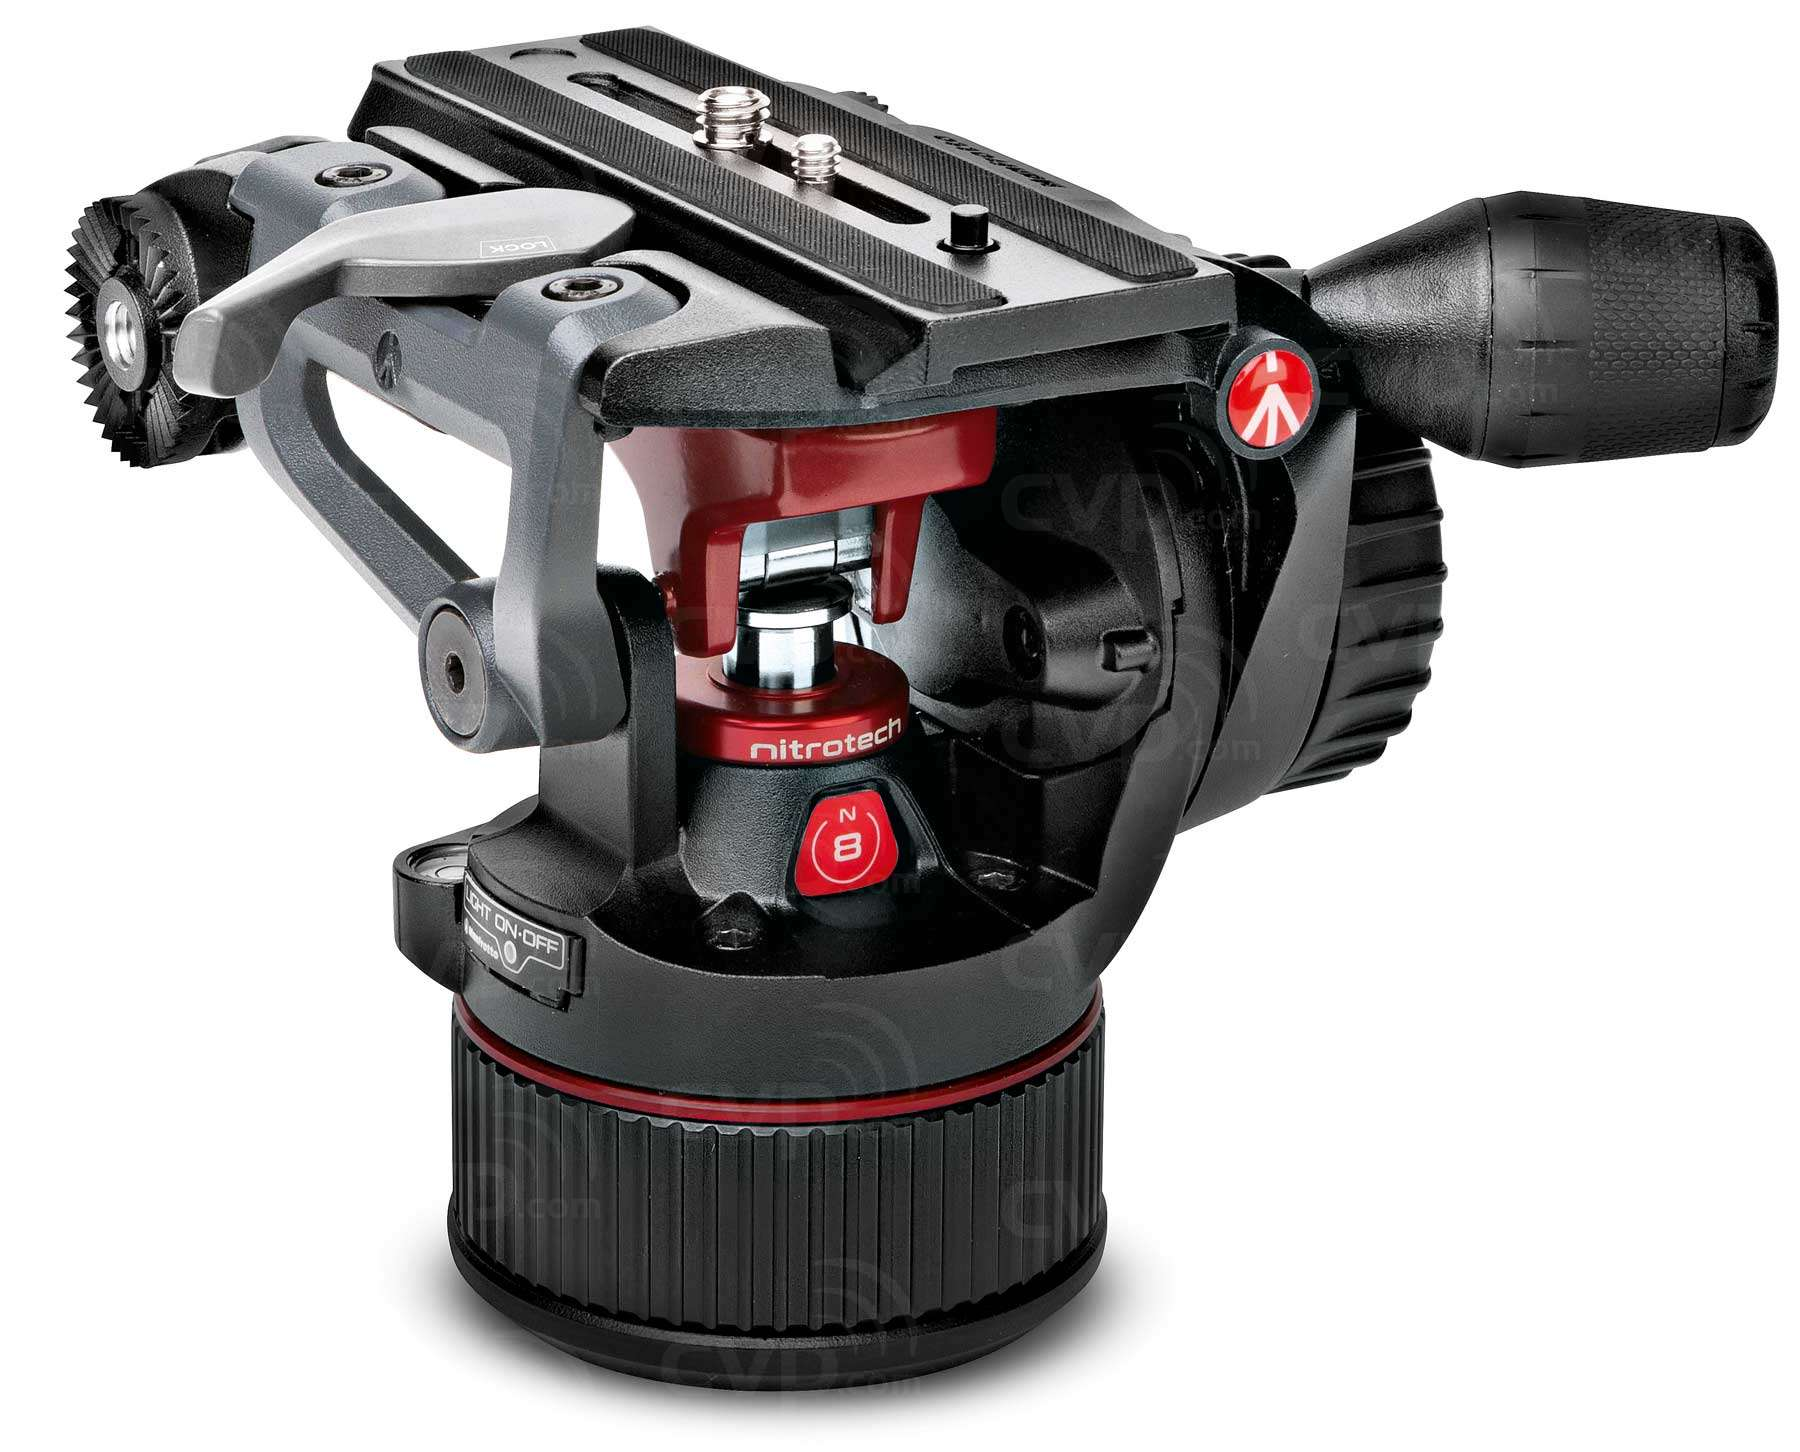 Manfrotto MVKN8C (MVK-N8C) Nitrotech N8 and 535 MPRO Carbon Fibre